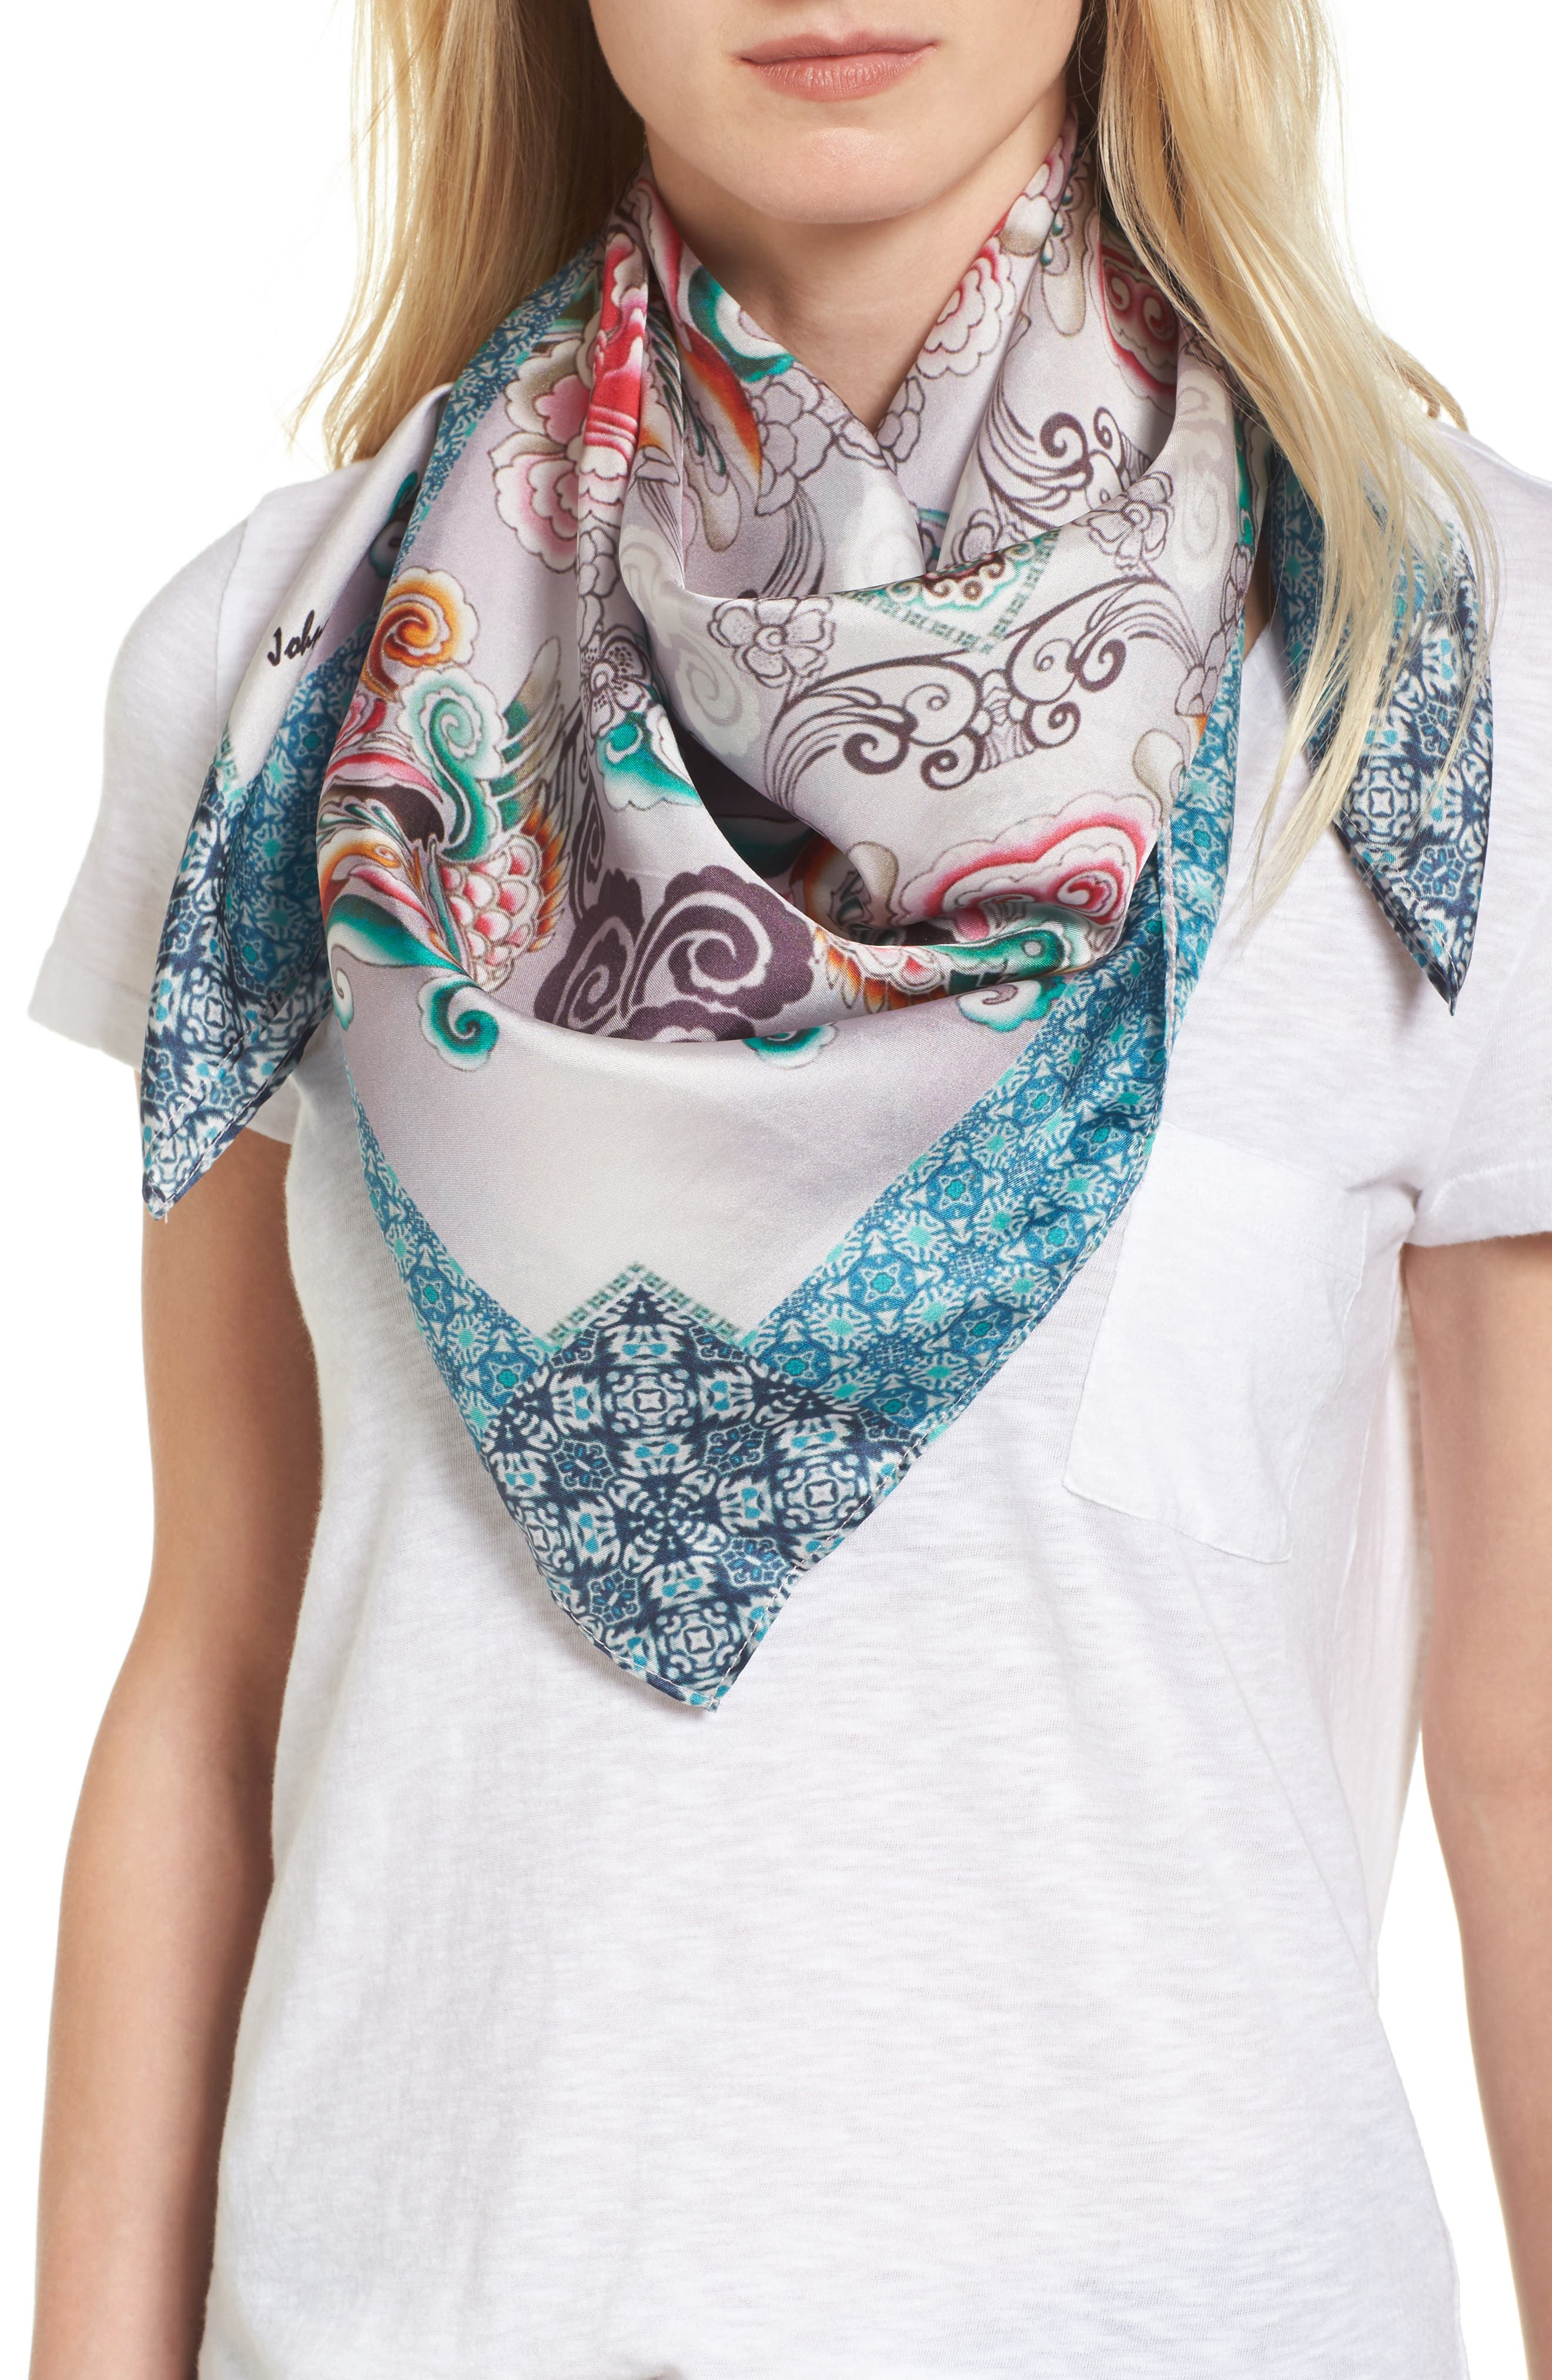 Saint Square Silk Scarf,                         Main,                         color, 400